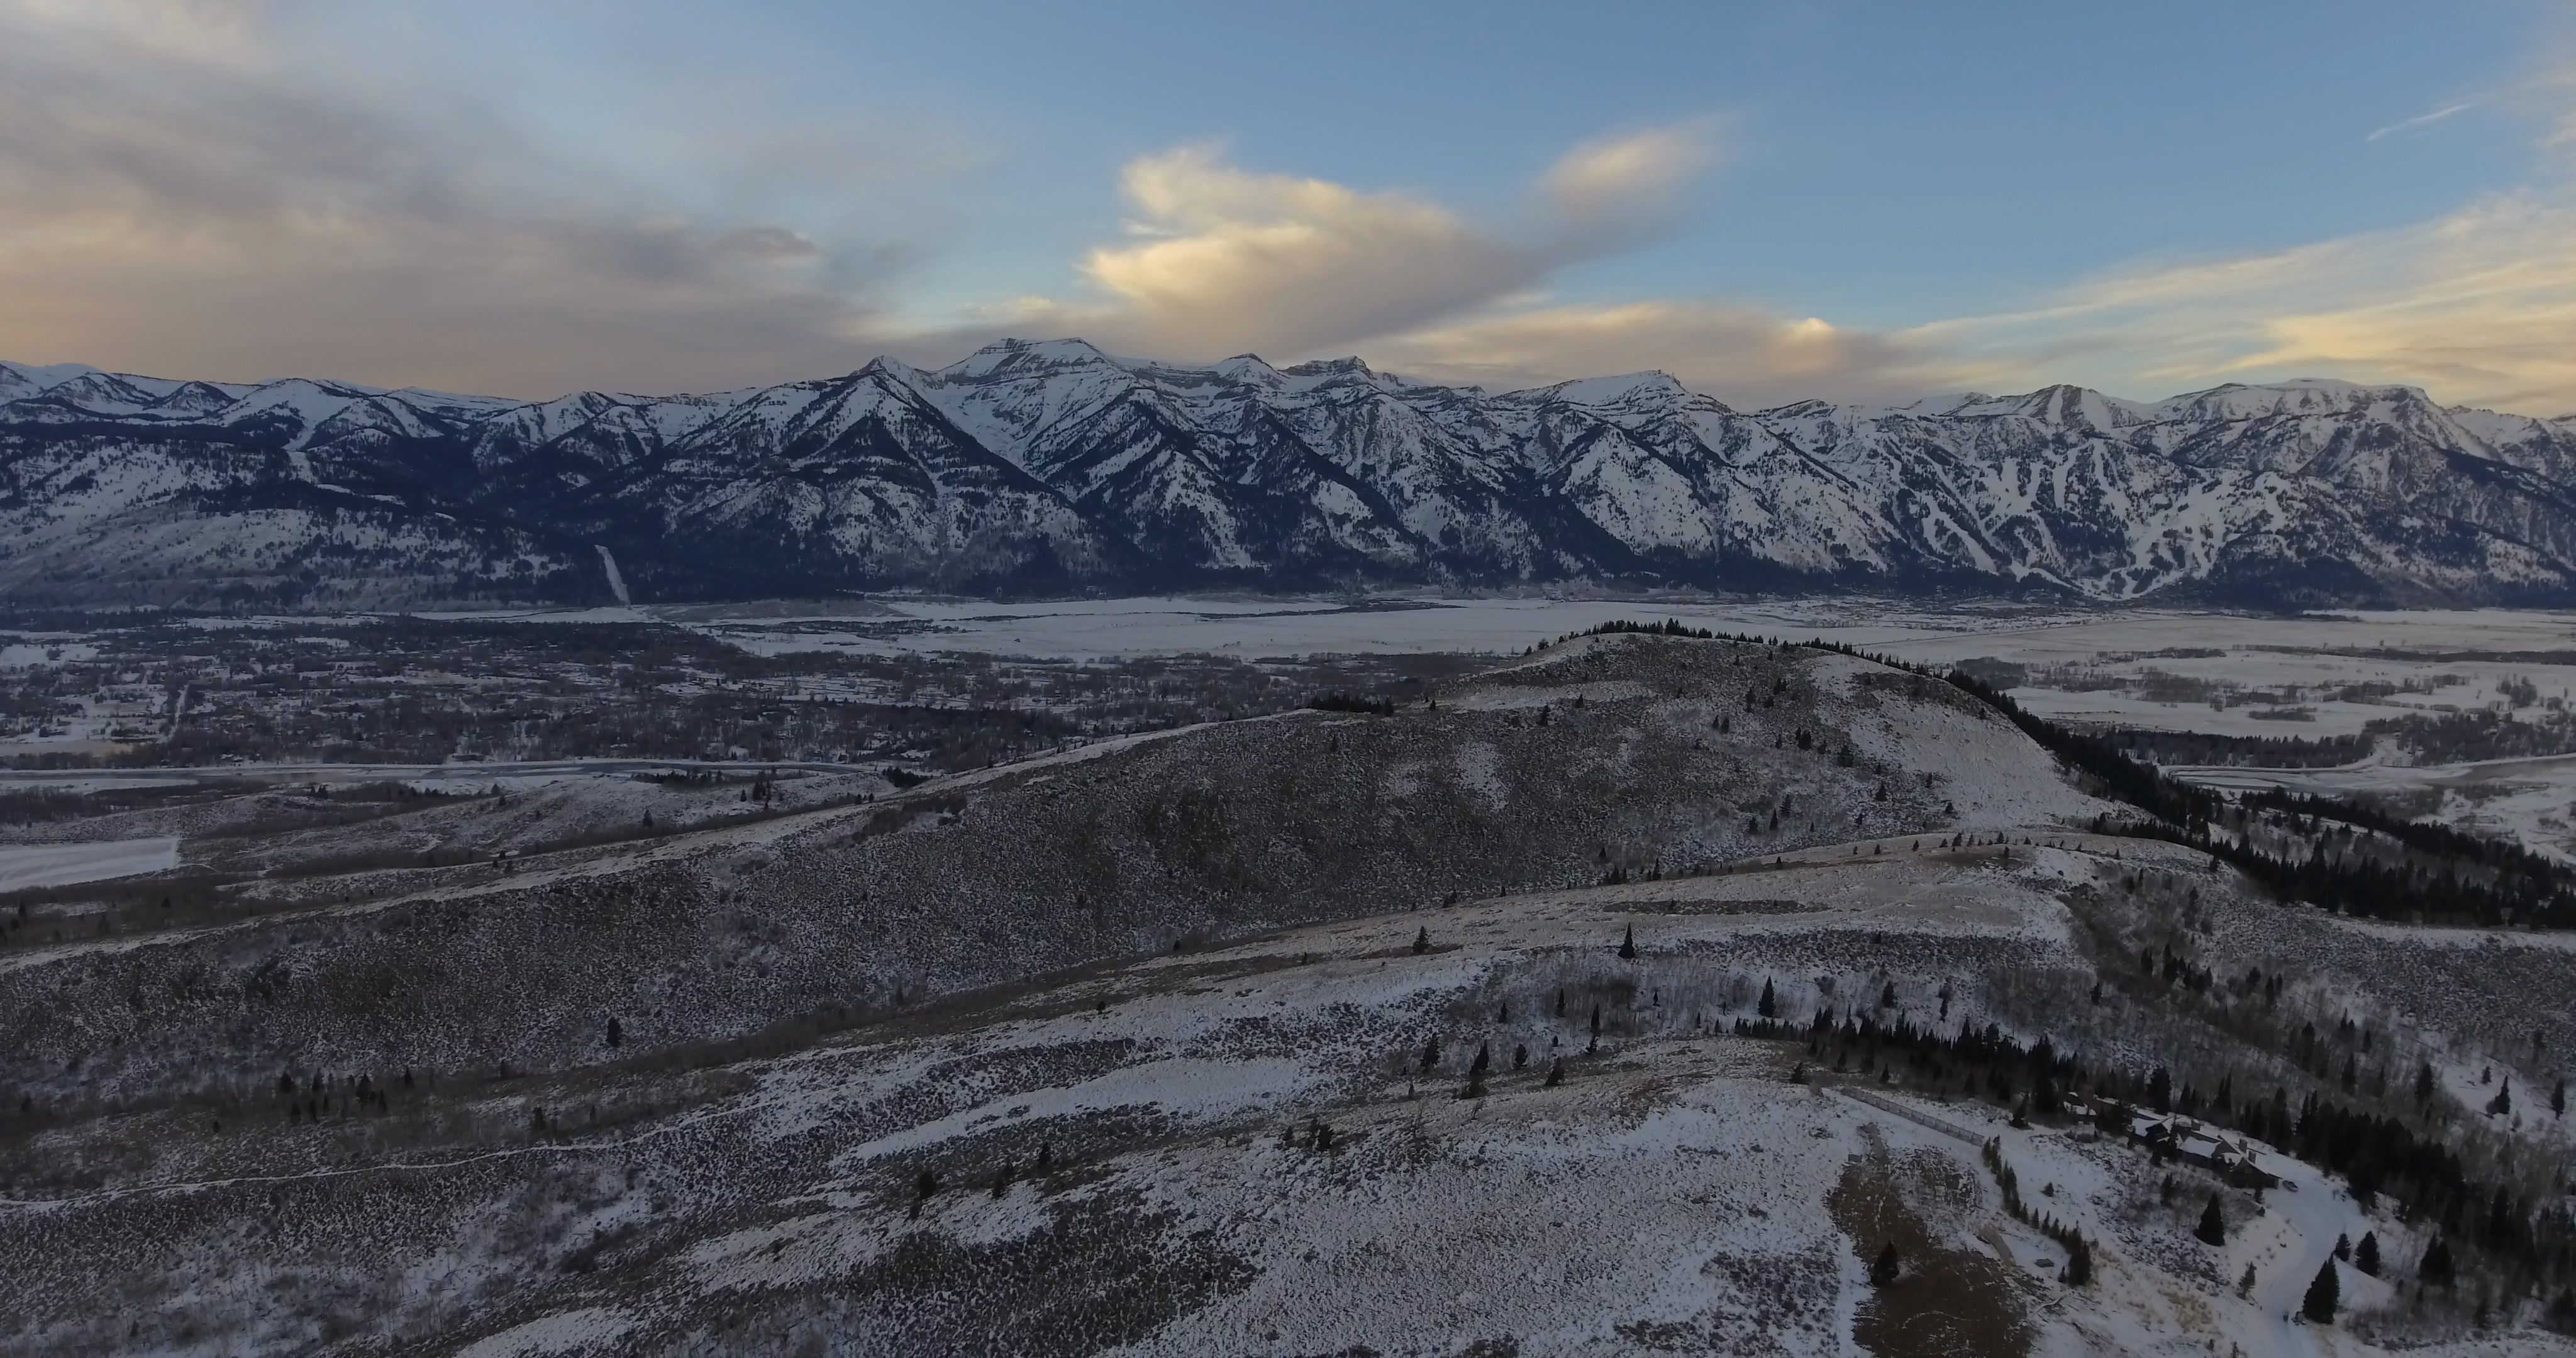 Winter Mountain Nature Landscape Covered In Snow Aerial Rugged 4k Stock Footage Landscape Covered Nature Winter Winter Mountain Mountains Aerial